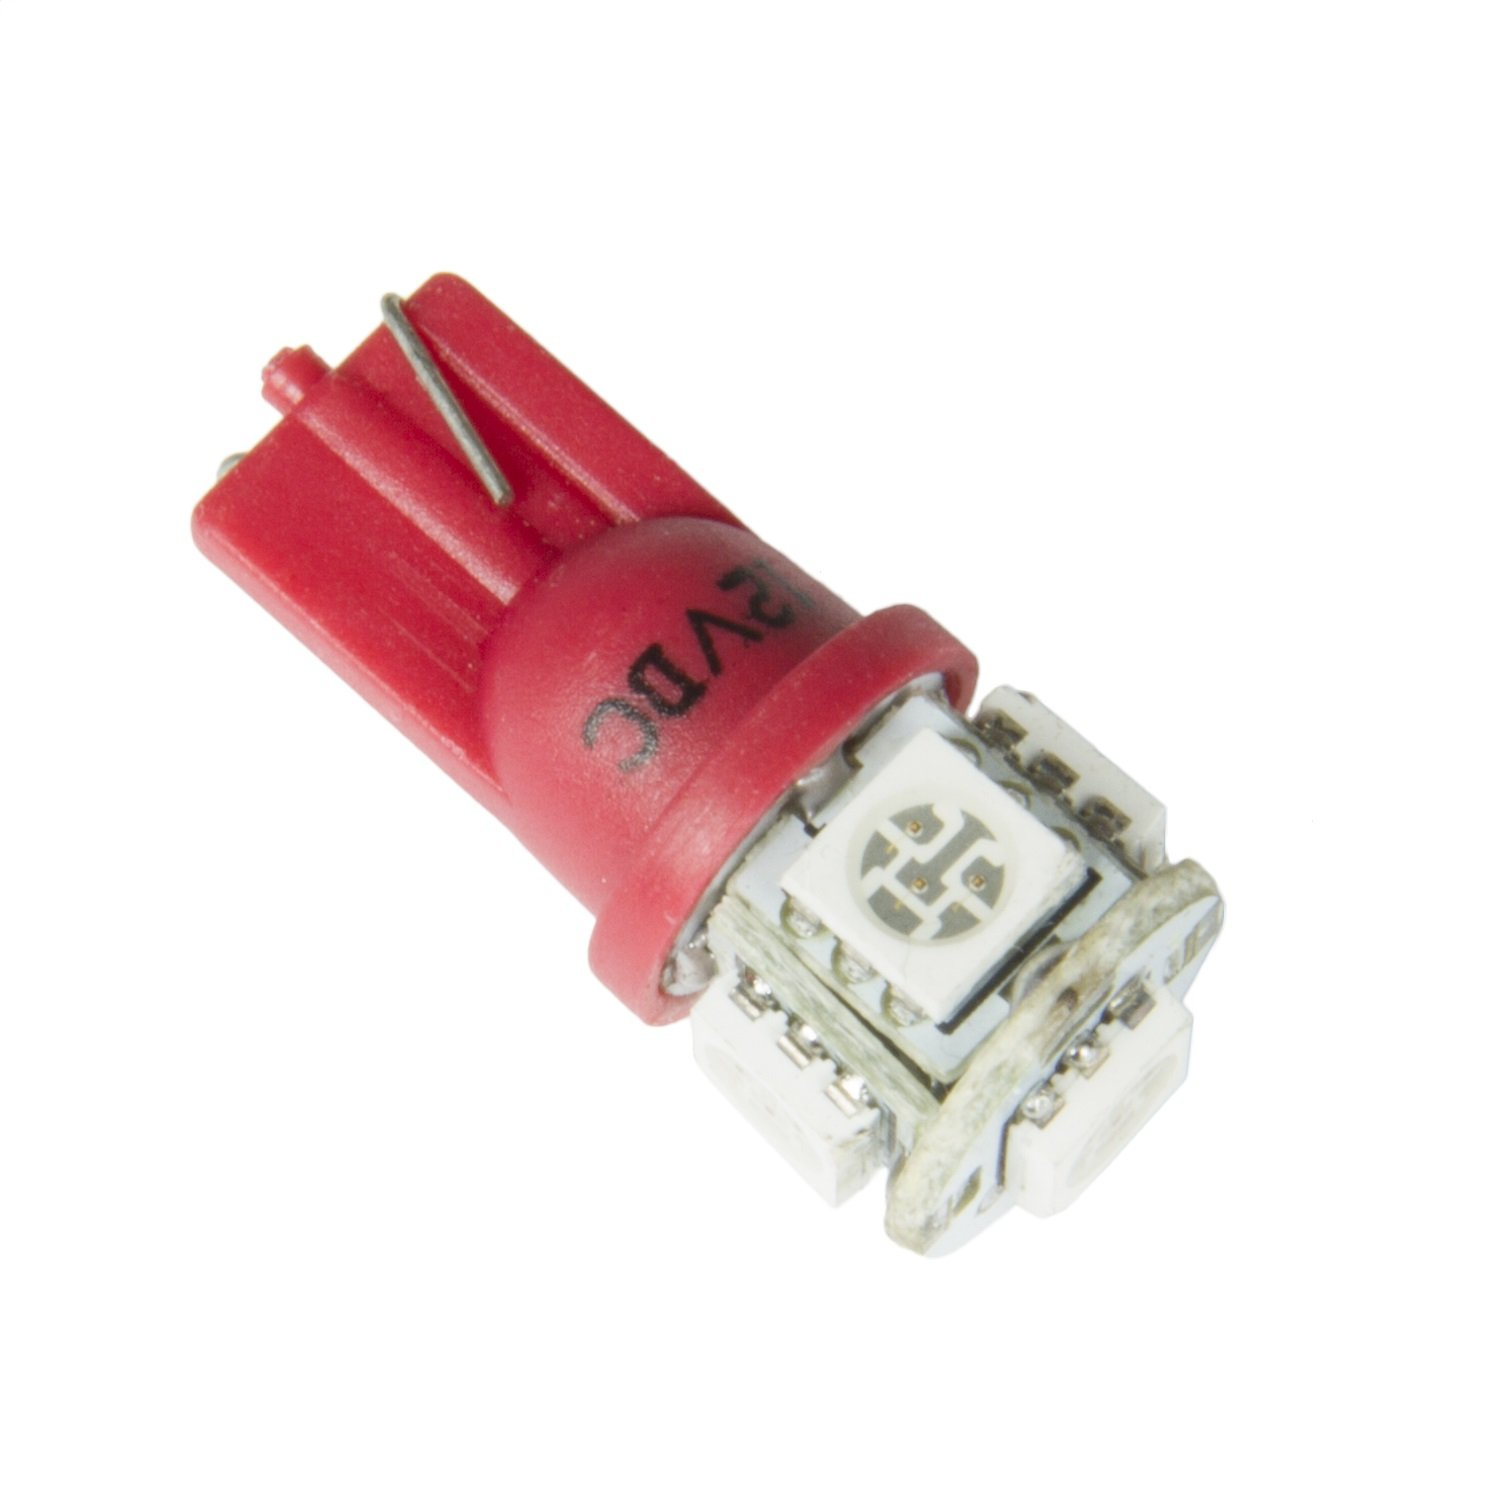 Auto Meter 3284 Led Bulb Kit Replacement For Autogage Tachometer Item Aut233902 The Gage Tach Series Is One Of Speedometers Tachometers Gauges Exc Red Automotive